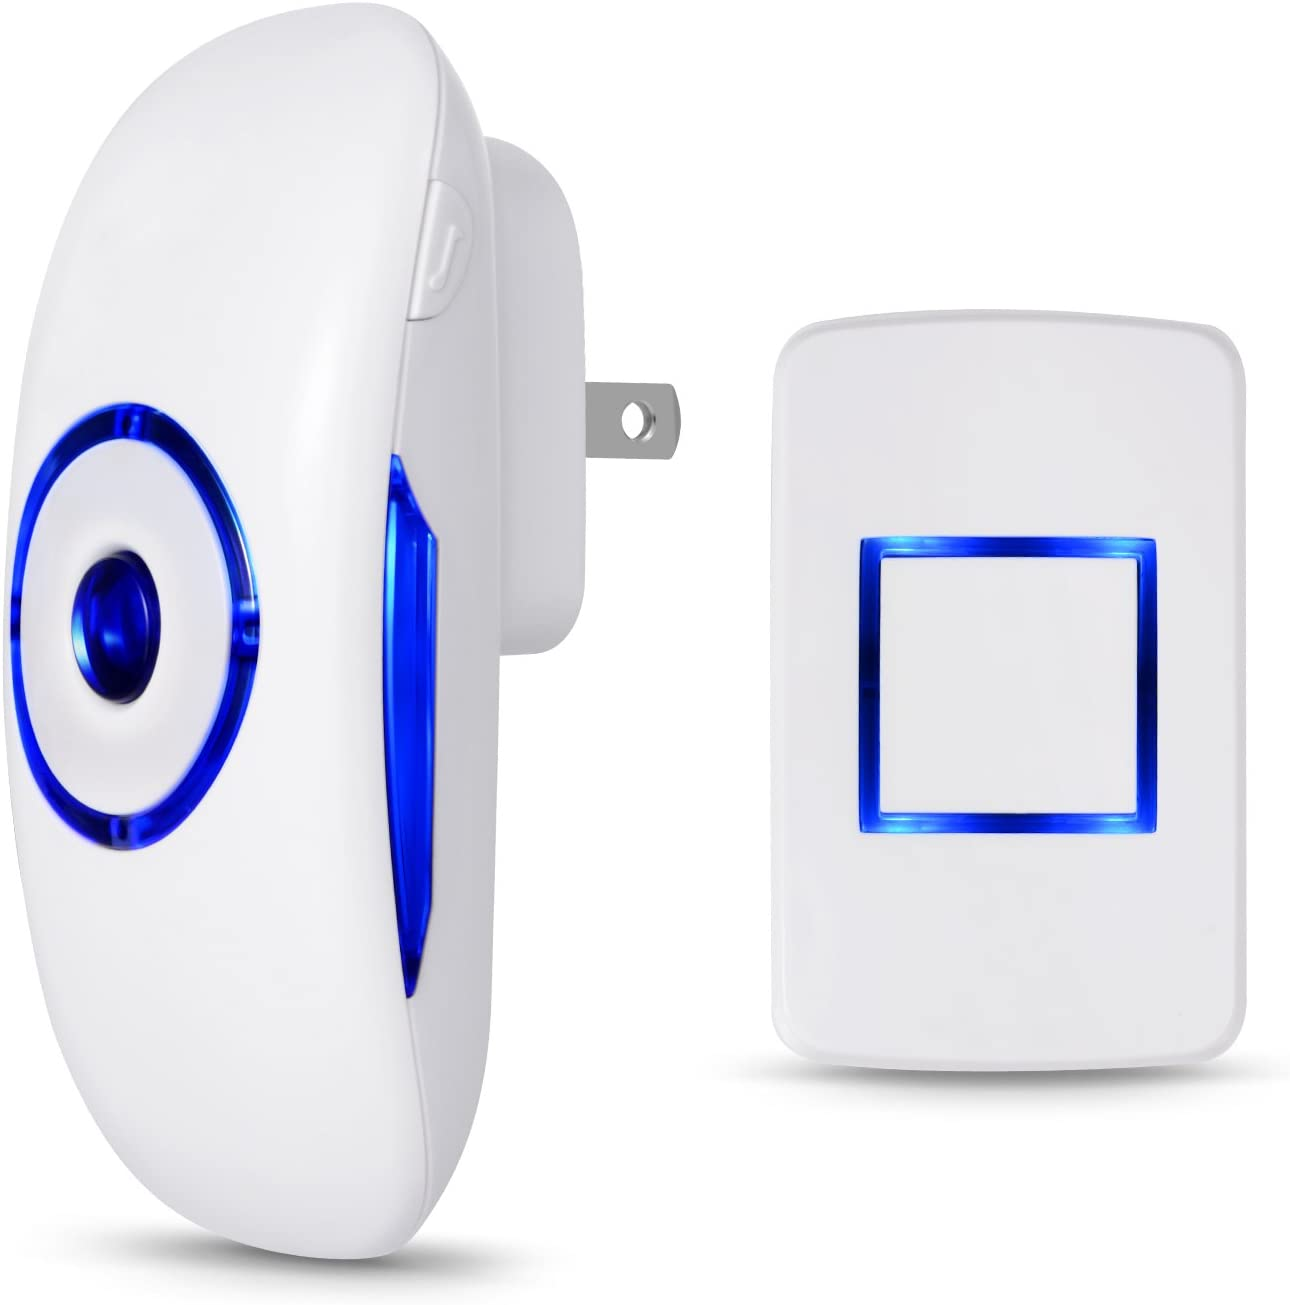 Adoric Life Wireless Doorbell Waterproof Door Bell Kit